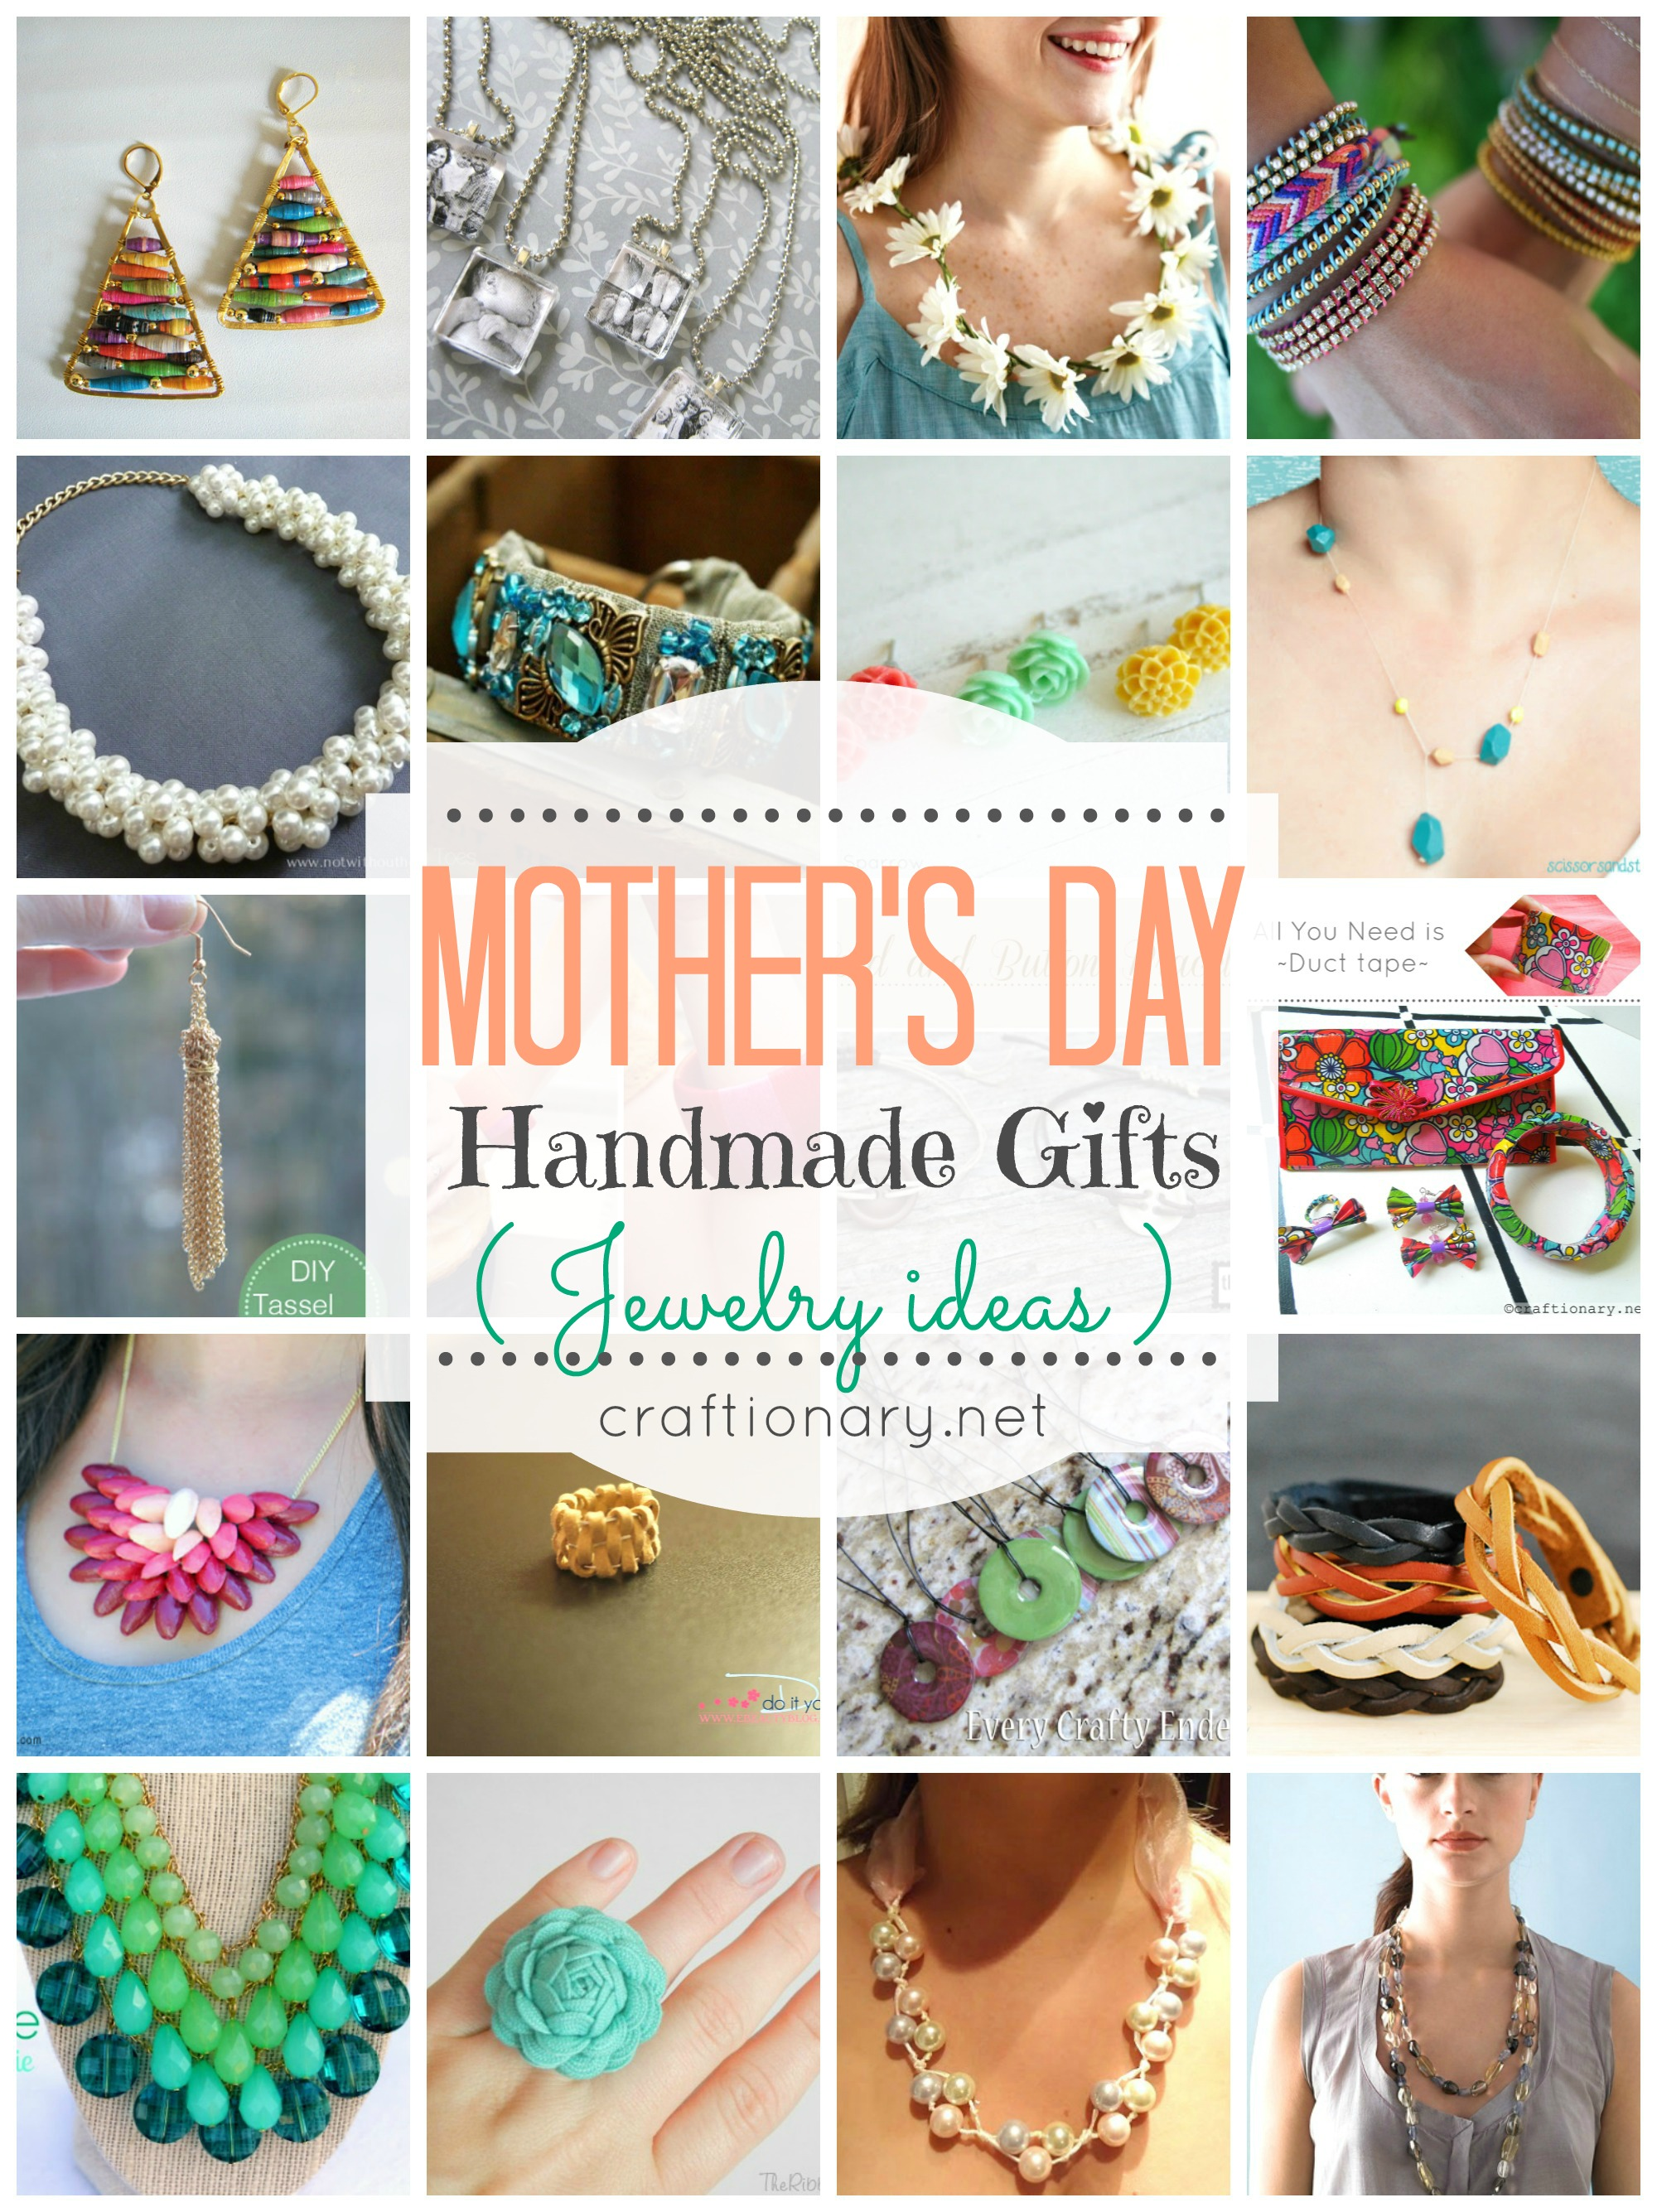 Gifts Ideas For Mothers Day: Craftionary